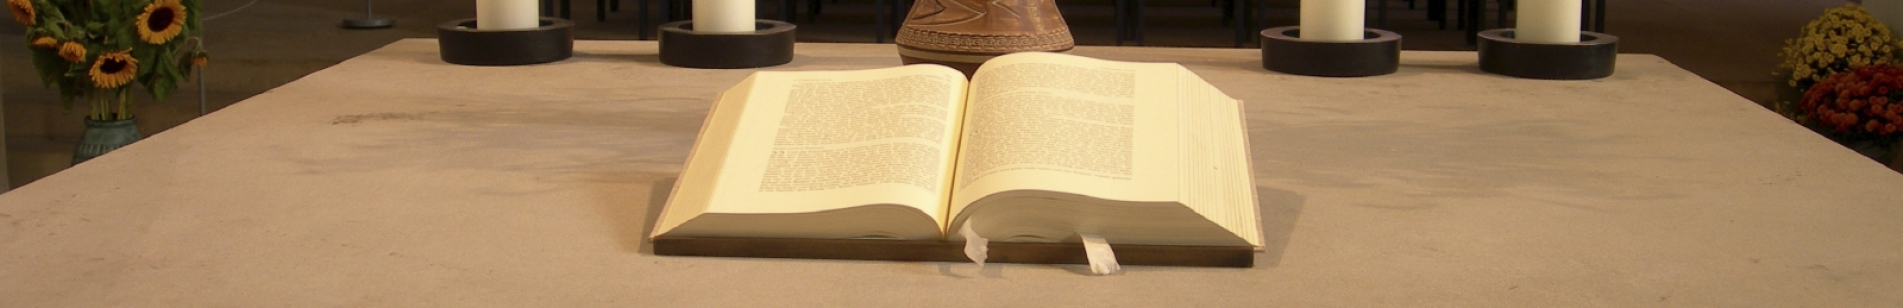 Open Bible for scripture readings